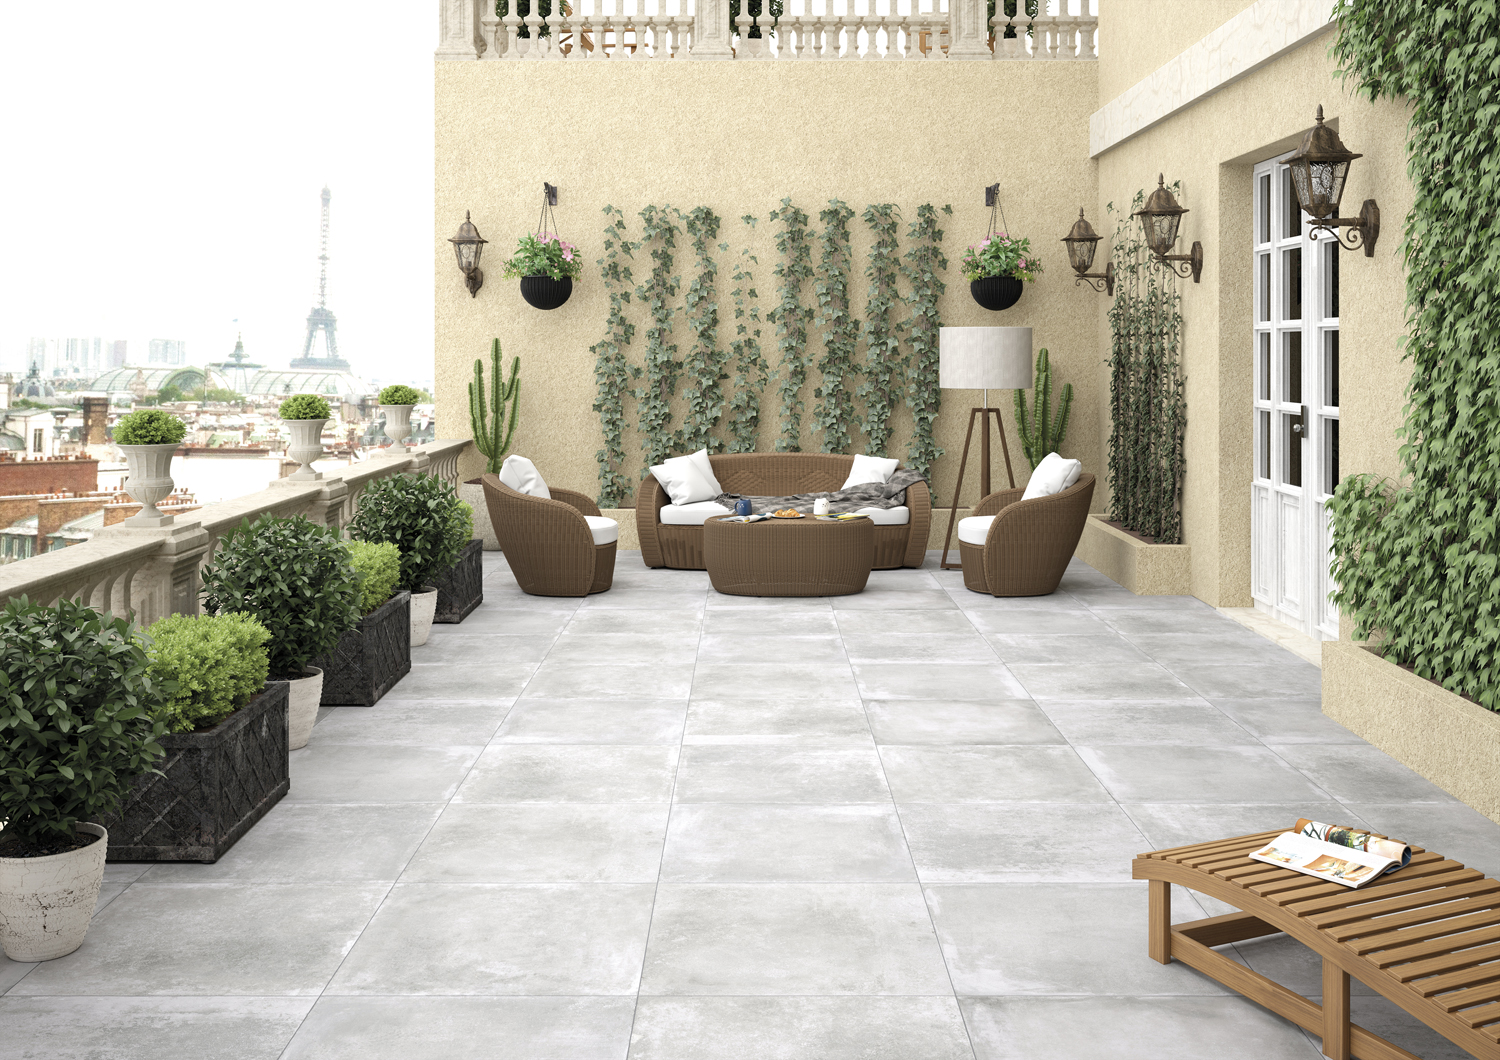 Tile Of Spain In Outdoor Spaces Tileofspainusa Com